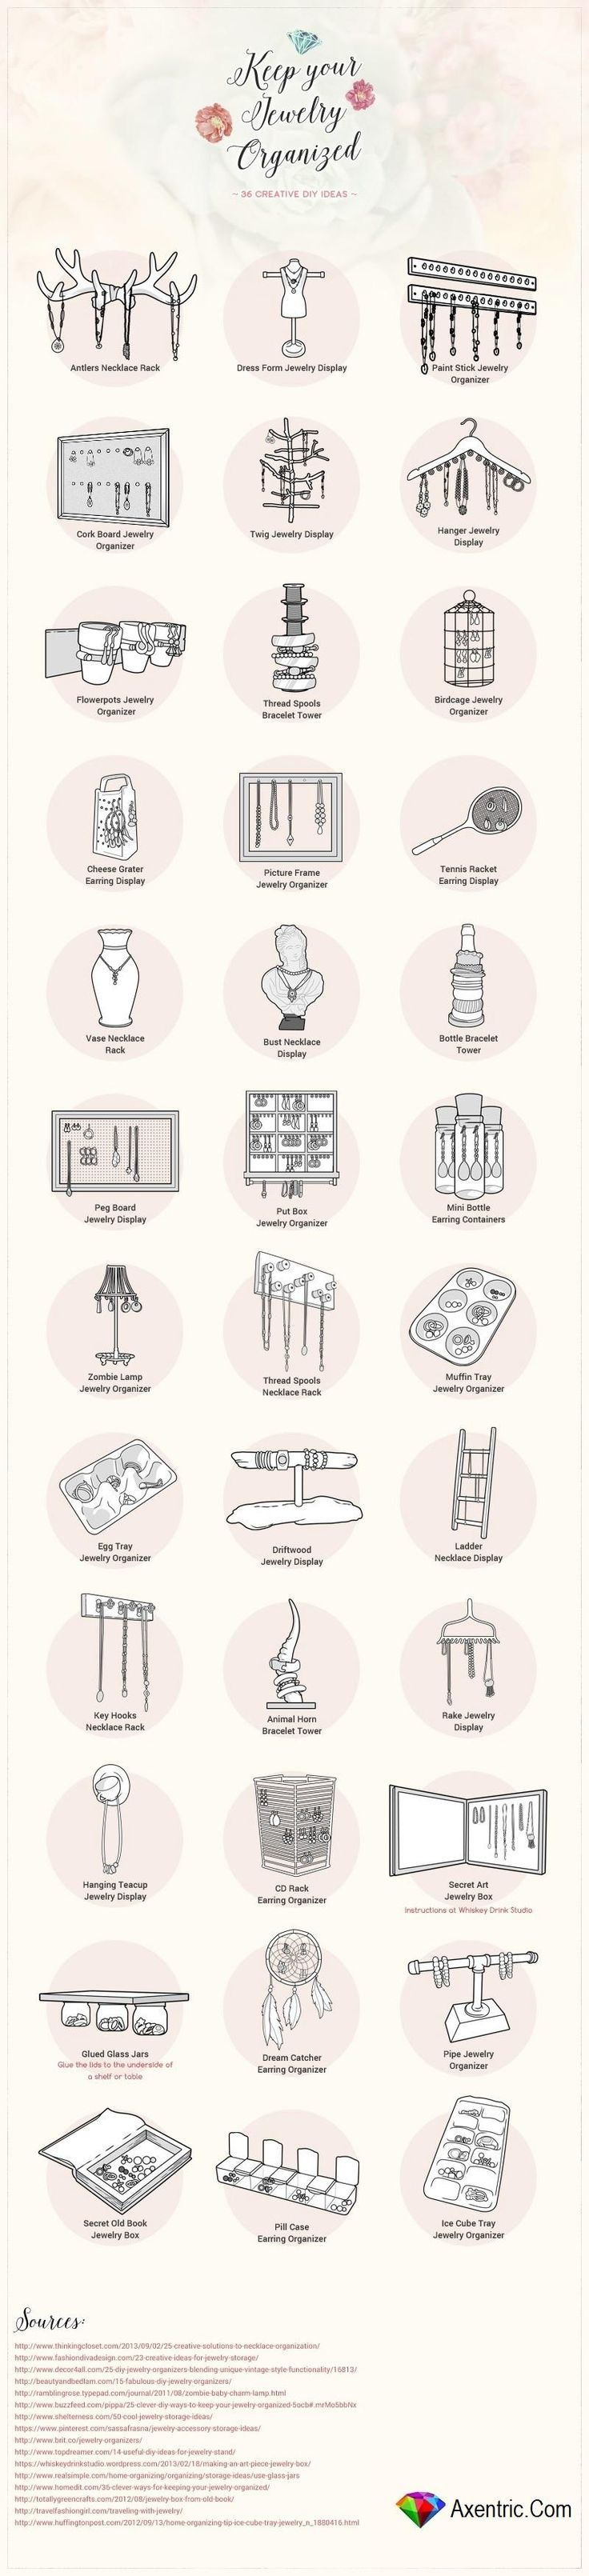 36 Creative DIY Ideas for Organizing Your Jewelry Storage Better